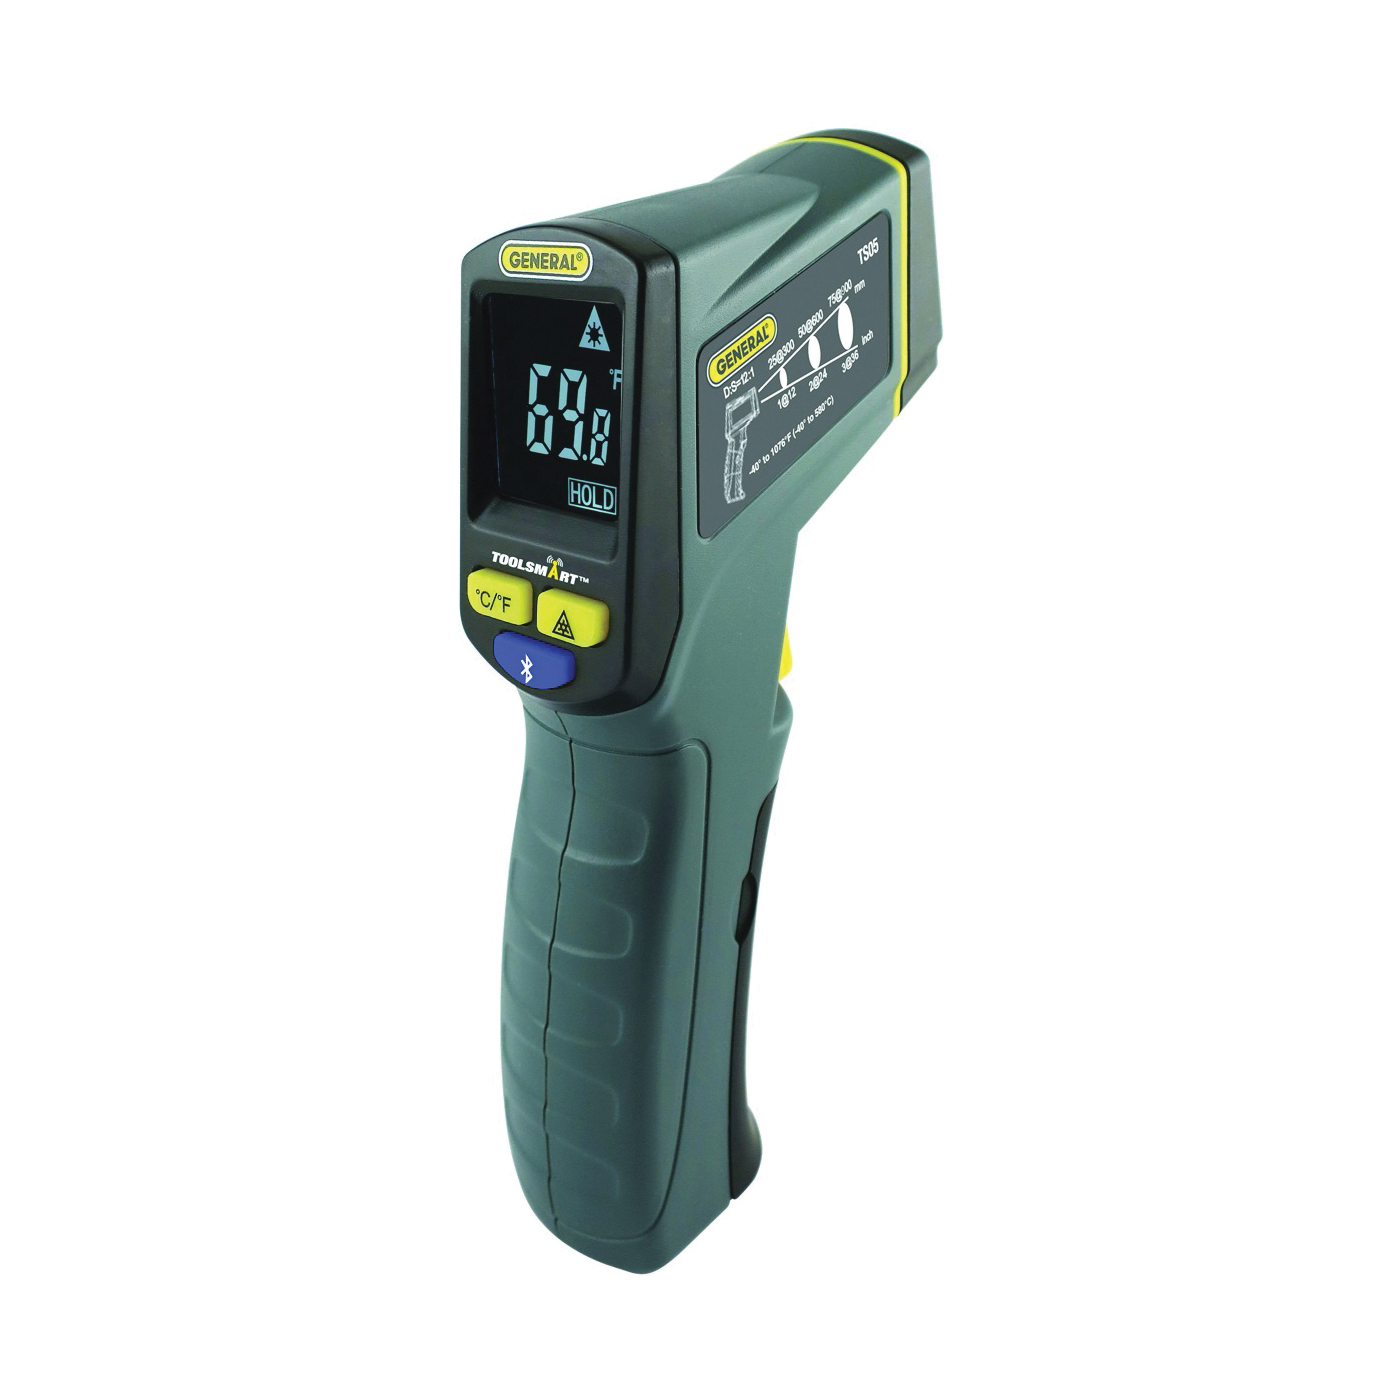 Picture of GENERAL ToolSmart TS05 Infrared Thermometer Kit, -40 to 1076 deg F, 1 deg Resolution